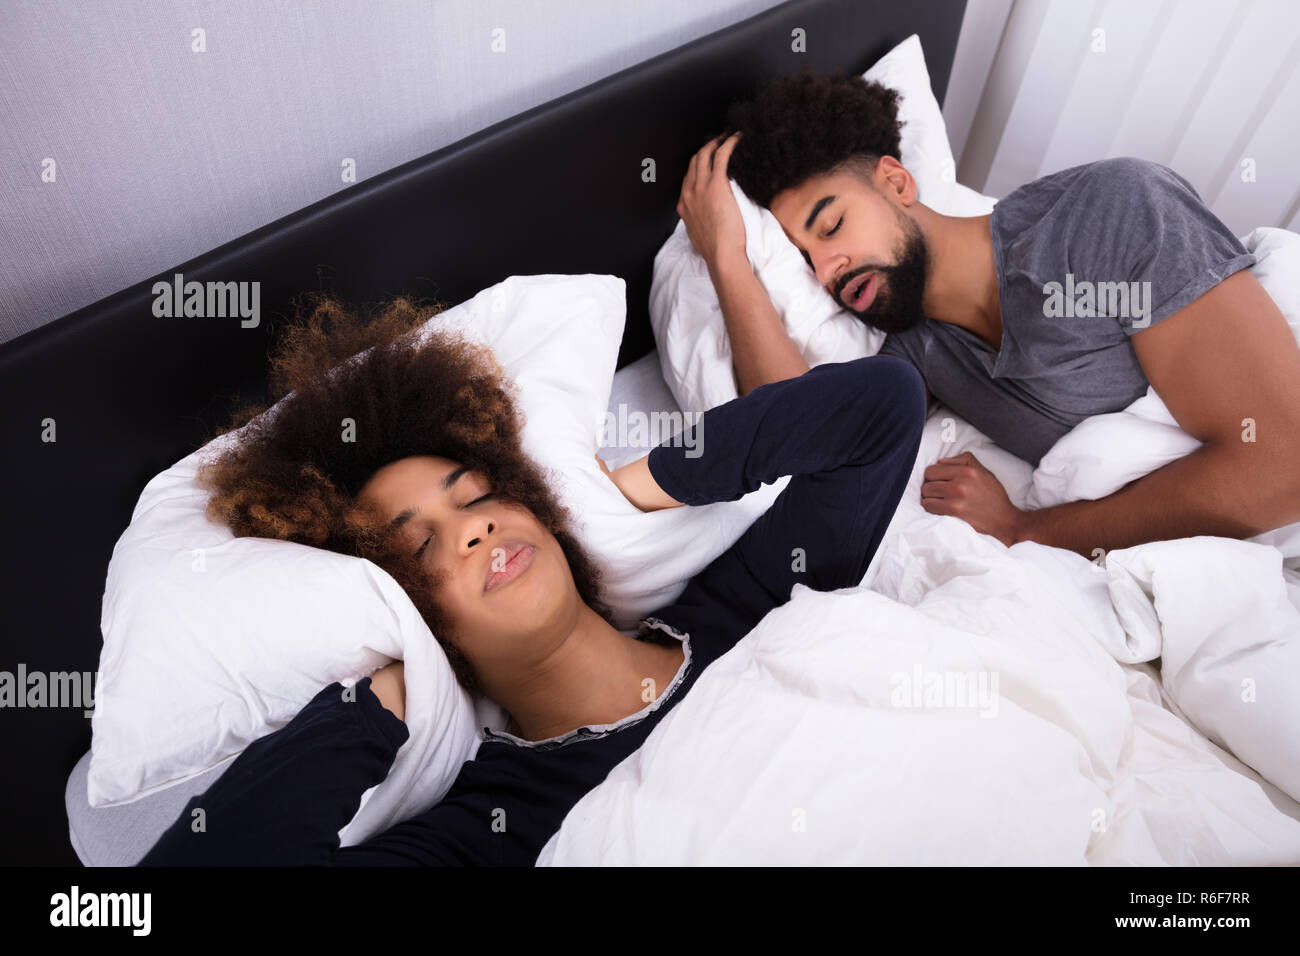 Woman Covering Her Ears While Man Snoring In Bed - Stock Image